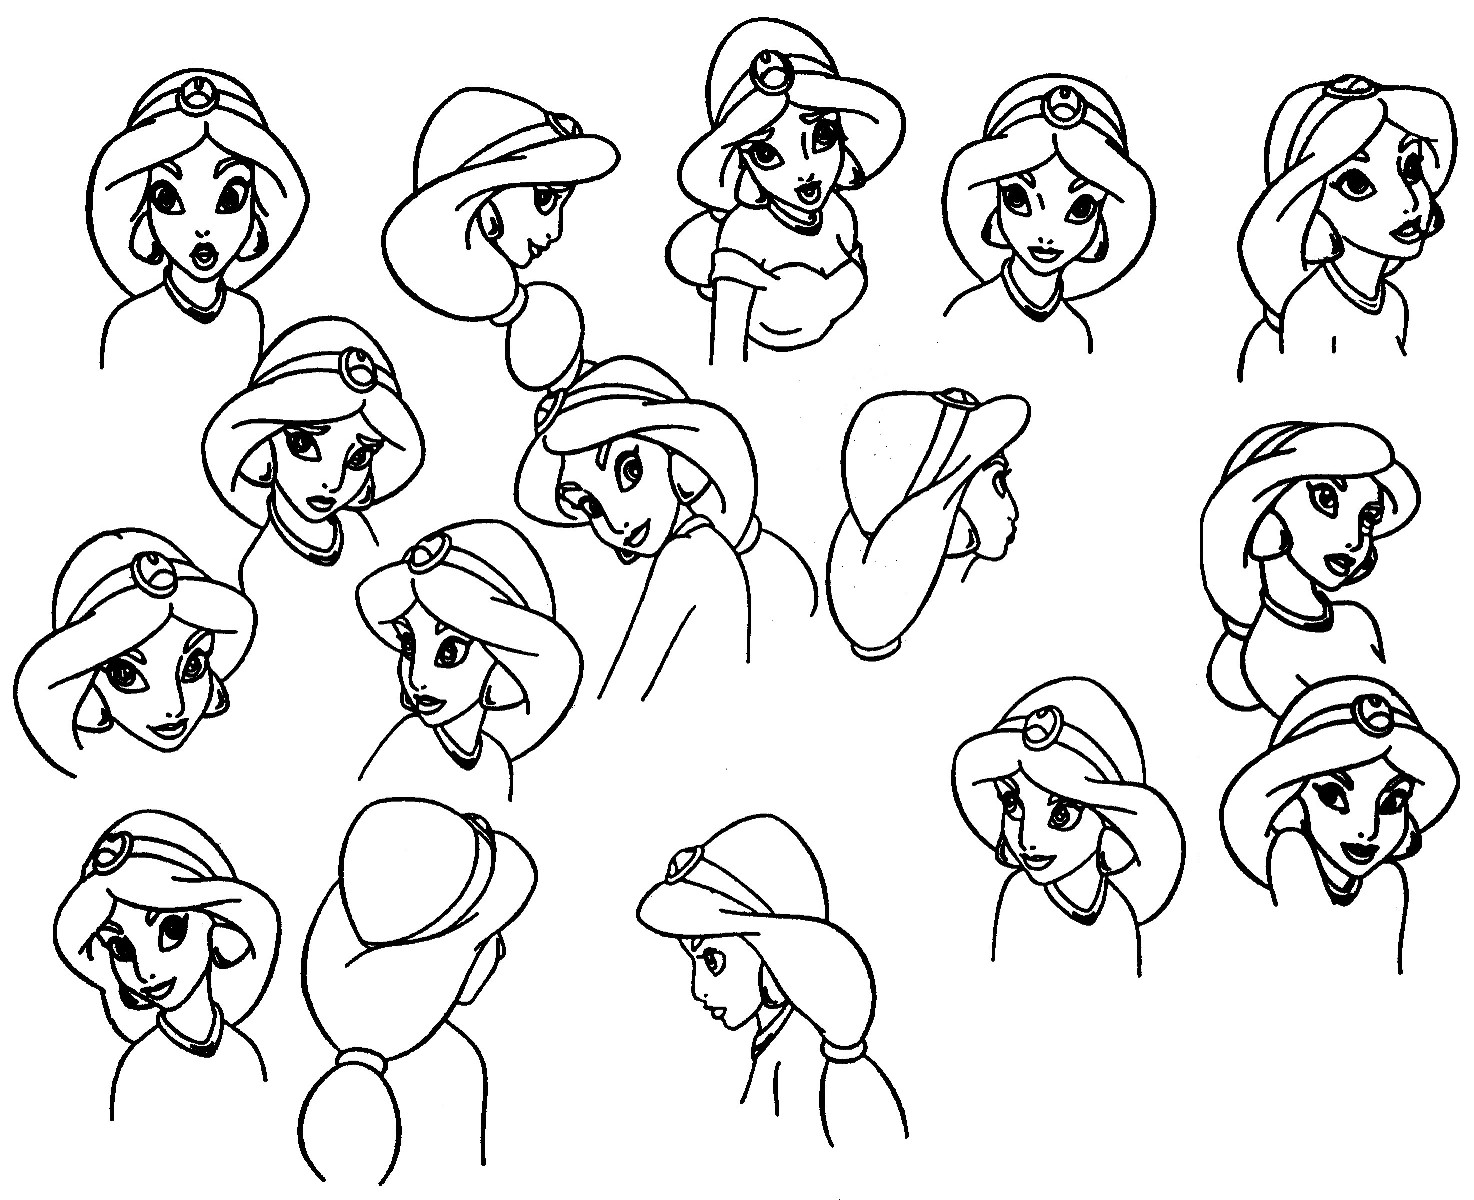 Jasmine Model Sheet Disney Princess Fan Art 34615575 Fanpop